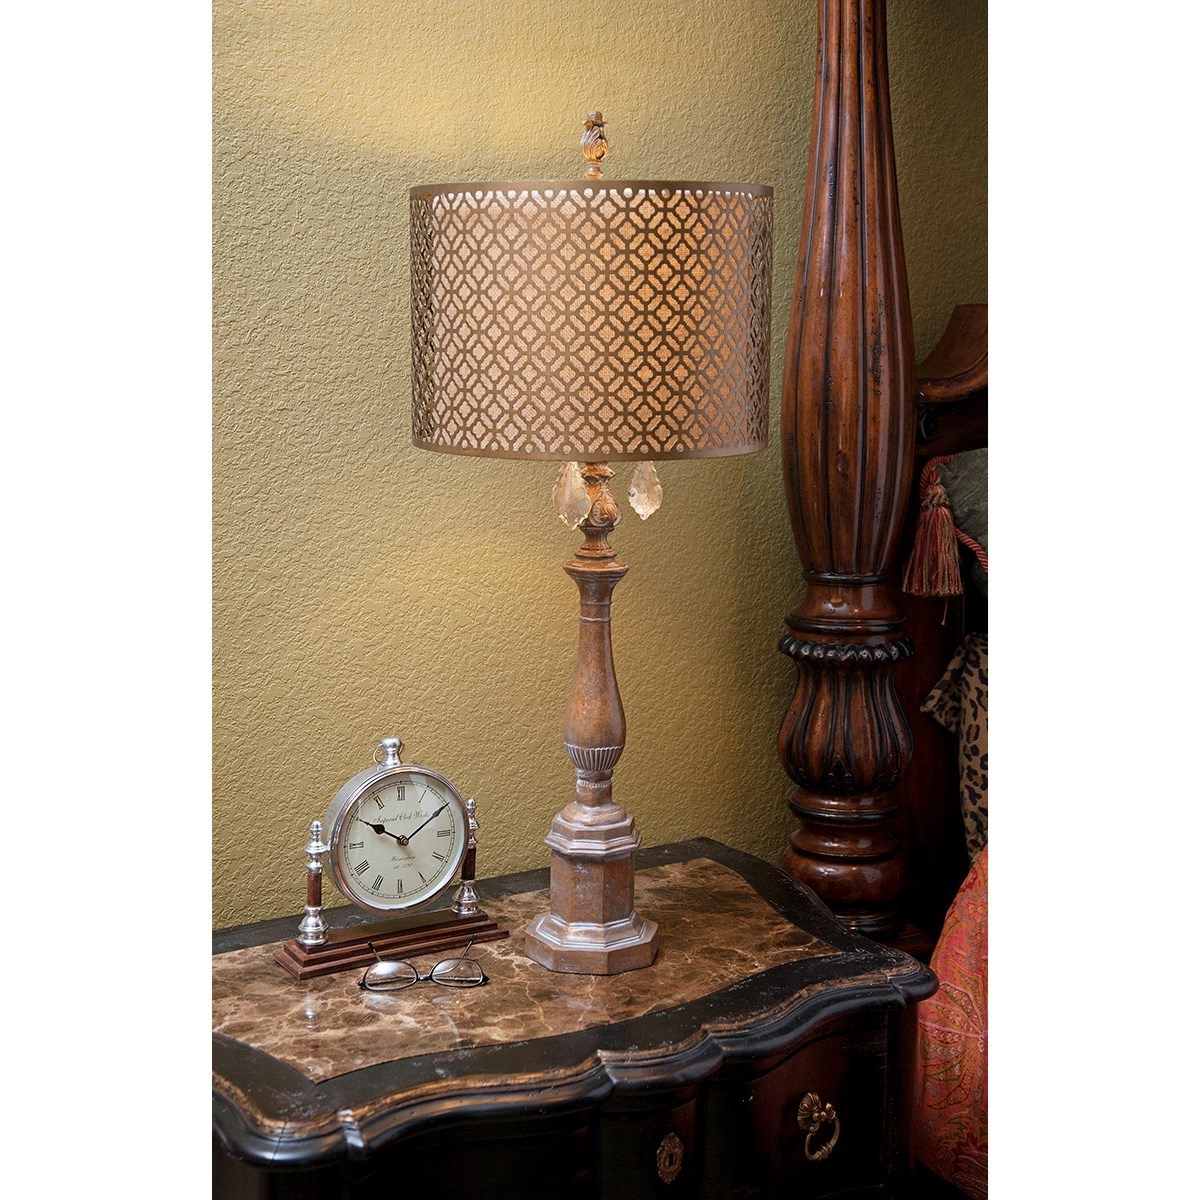 Becky Fletcher Savannah Table Lamp with Metal Shade by IMAX Worldwide Home at Alison Craig Home Furnishings